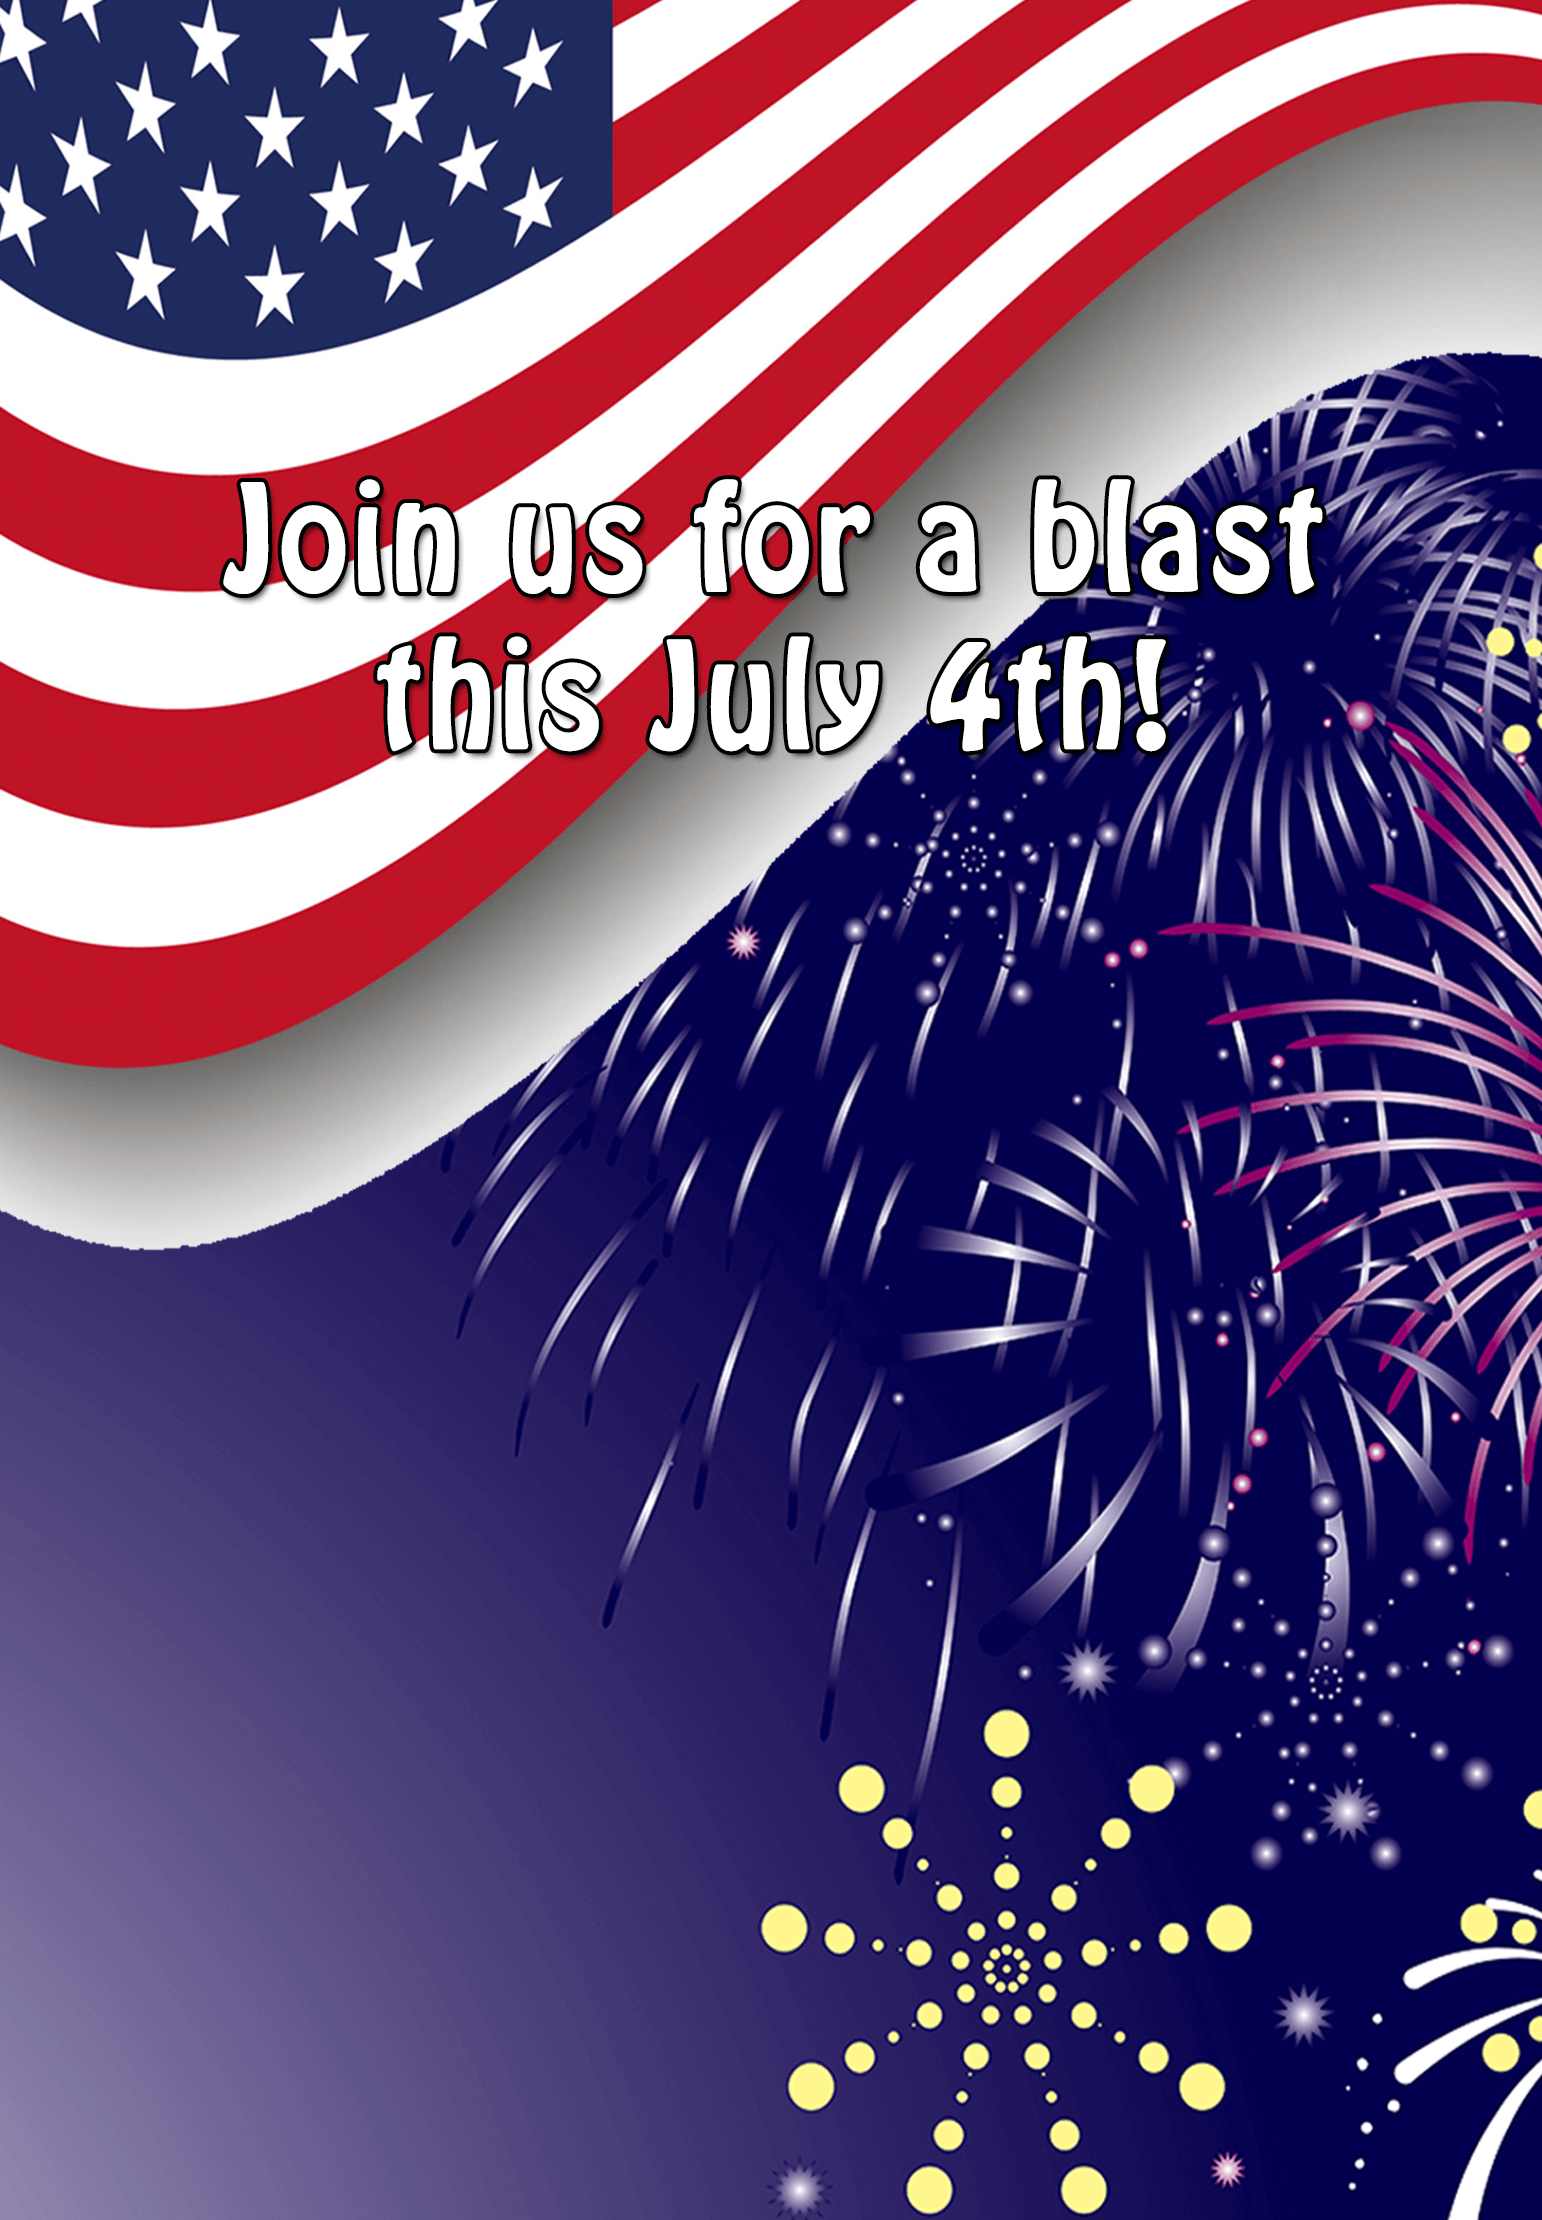 Join Us For A Blast Free Printable 4th Of July Invitation Template Greetings Island 4th Of July Images Free Party Invitation Templates Invitation Printing